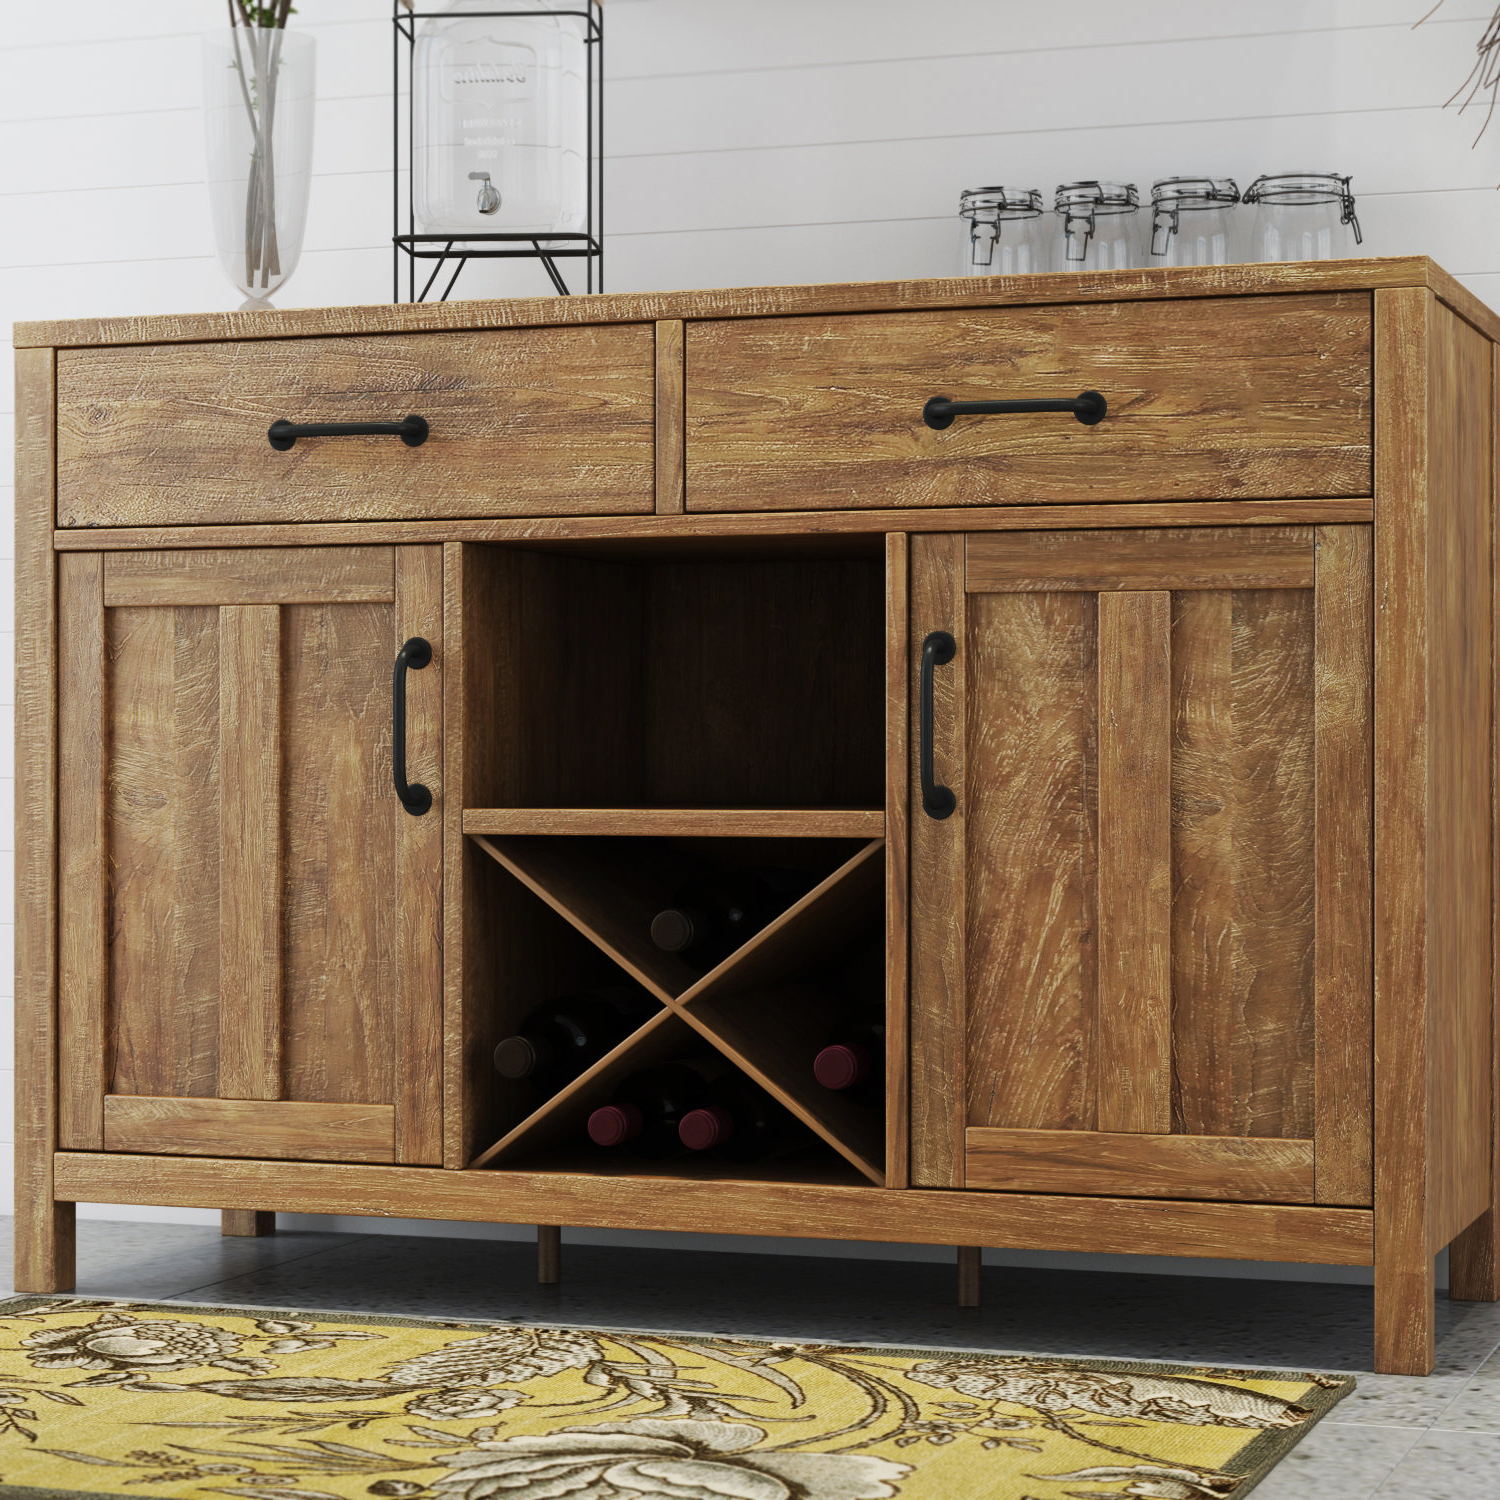 Avenal Sideboard & Reviews | Joss & Main For Fortville Sideboards (View 1 of 20)